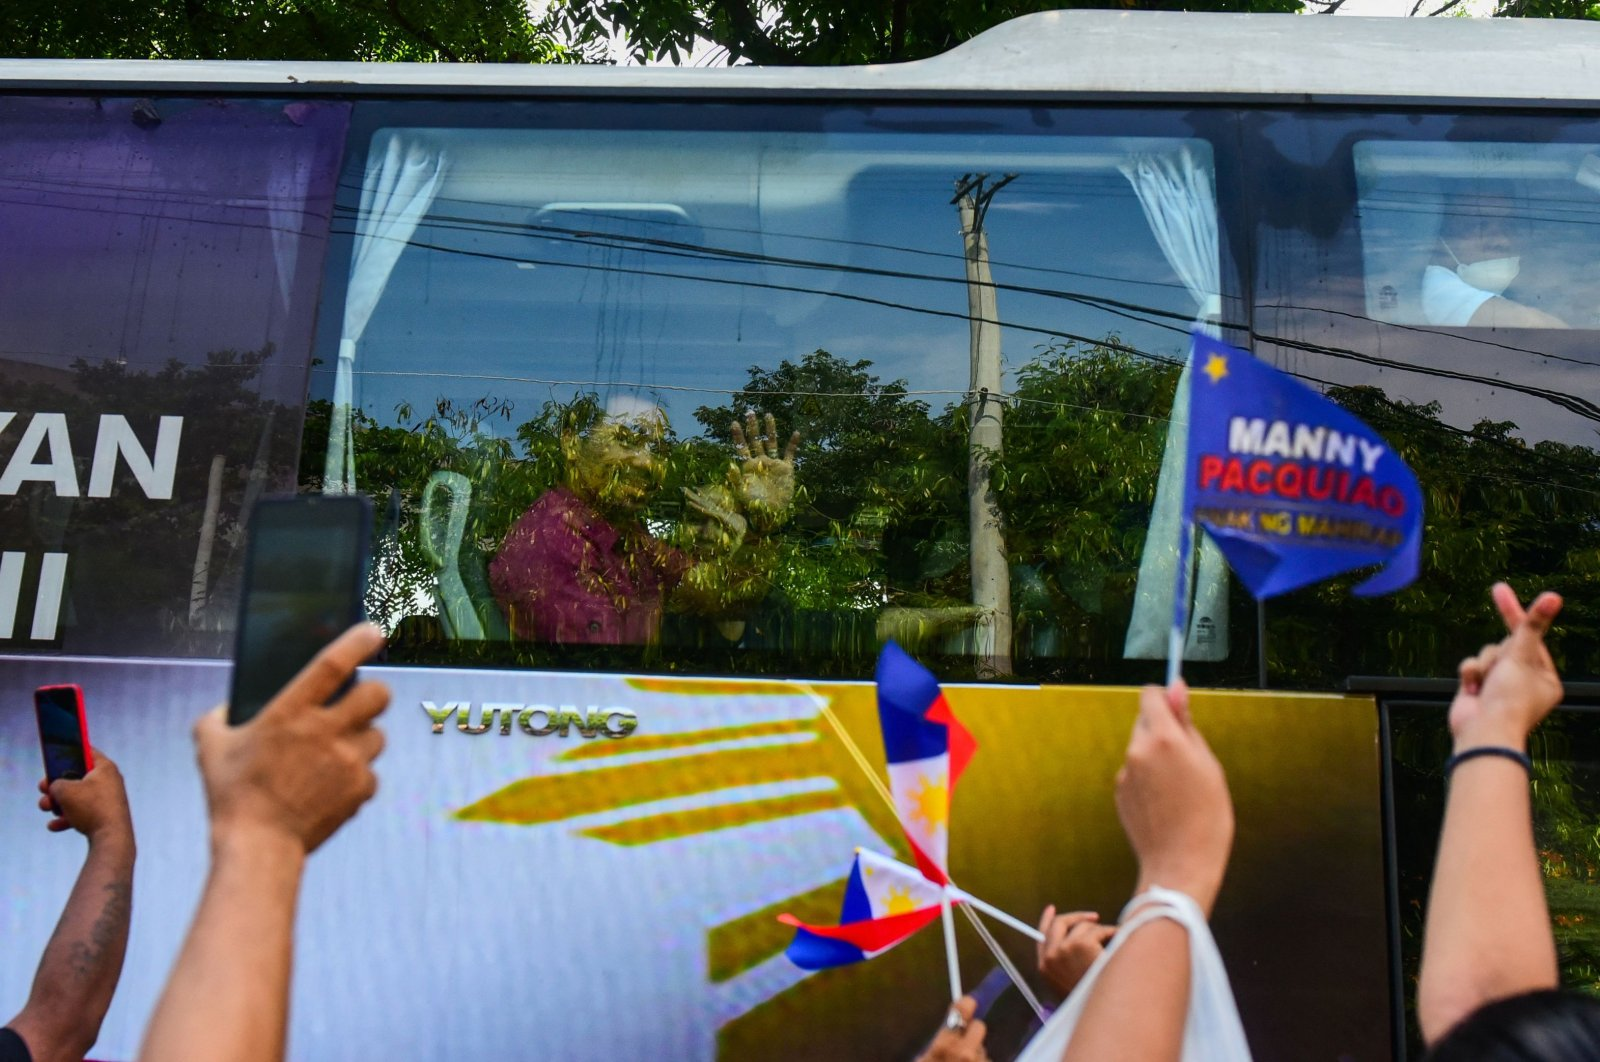 Philippine boxing icon and senator Manny Pacquiao waves to supporters as he arrives in a bus to file his certicate of candidacy for the Philippine presidency in Manila on Oct. 1, 2021. (Photo by Maria Tan / AFP)